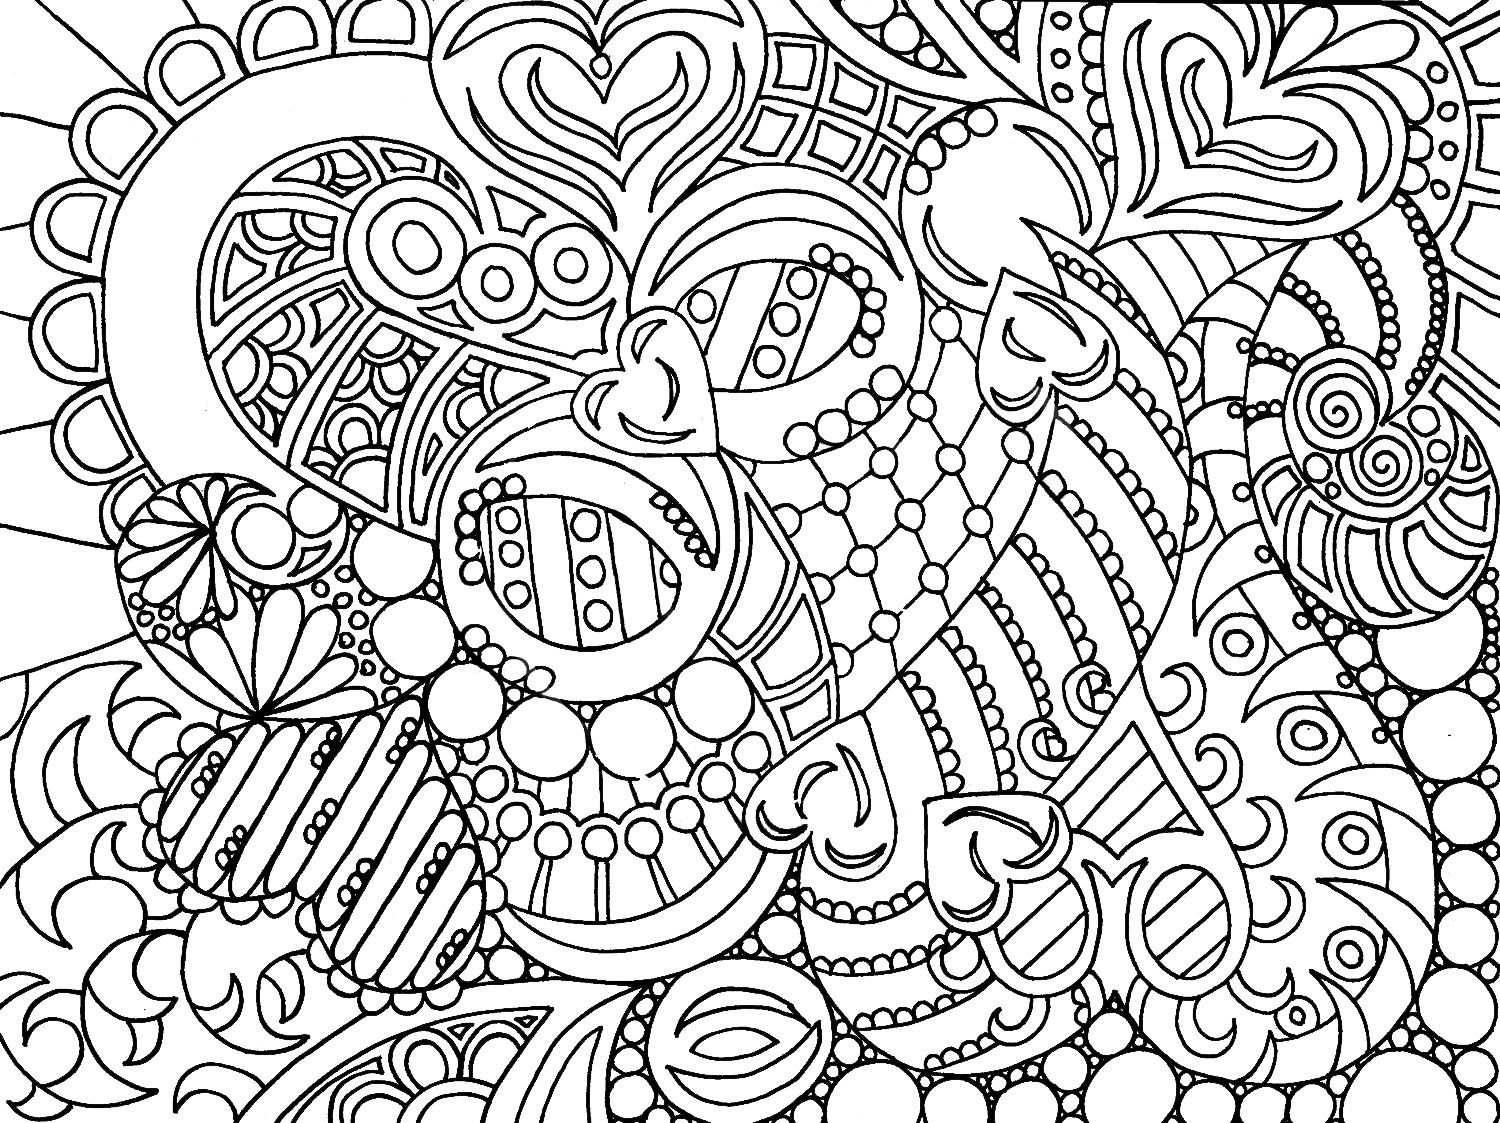 Advanced Coloring Worksheets : Free printable advanced coloring pages home